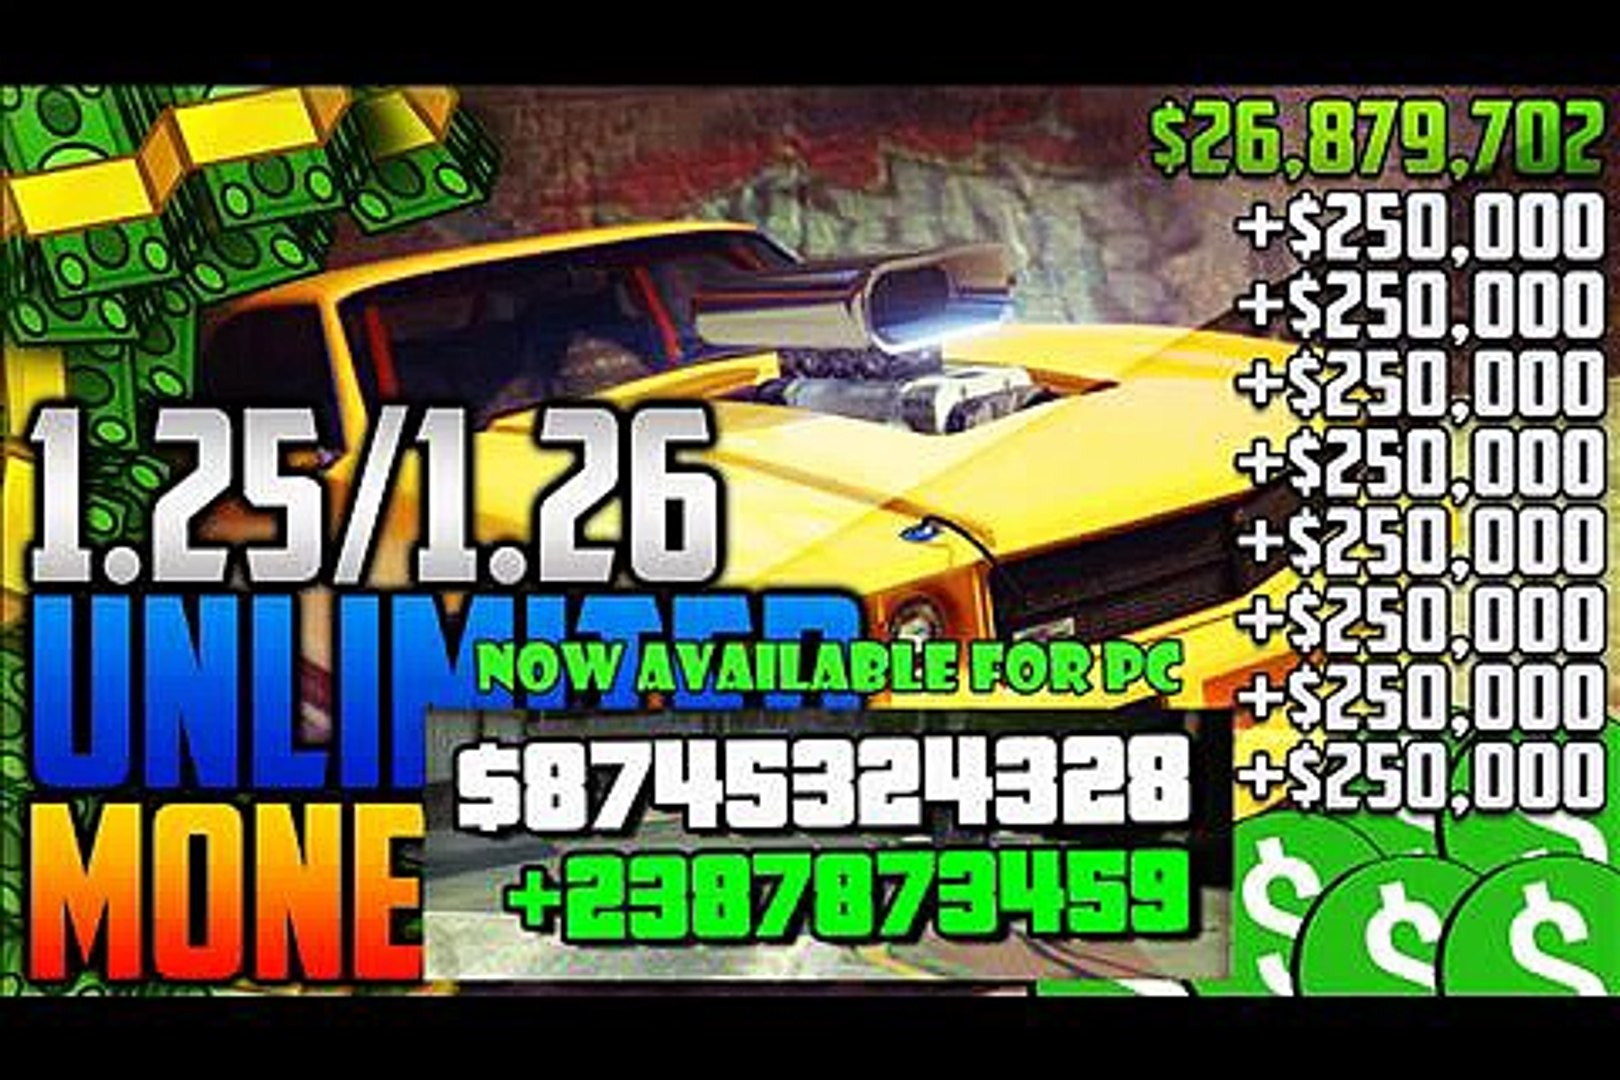 [PATCHED] GTA 5 ONLINE SOLO MONEY GLITCH - DUPLICATE CARS EASY - AFTER PATCH 1.26 (PS4/XBOX1)